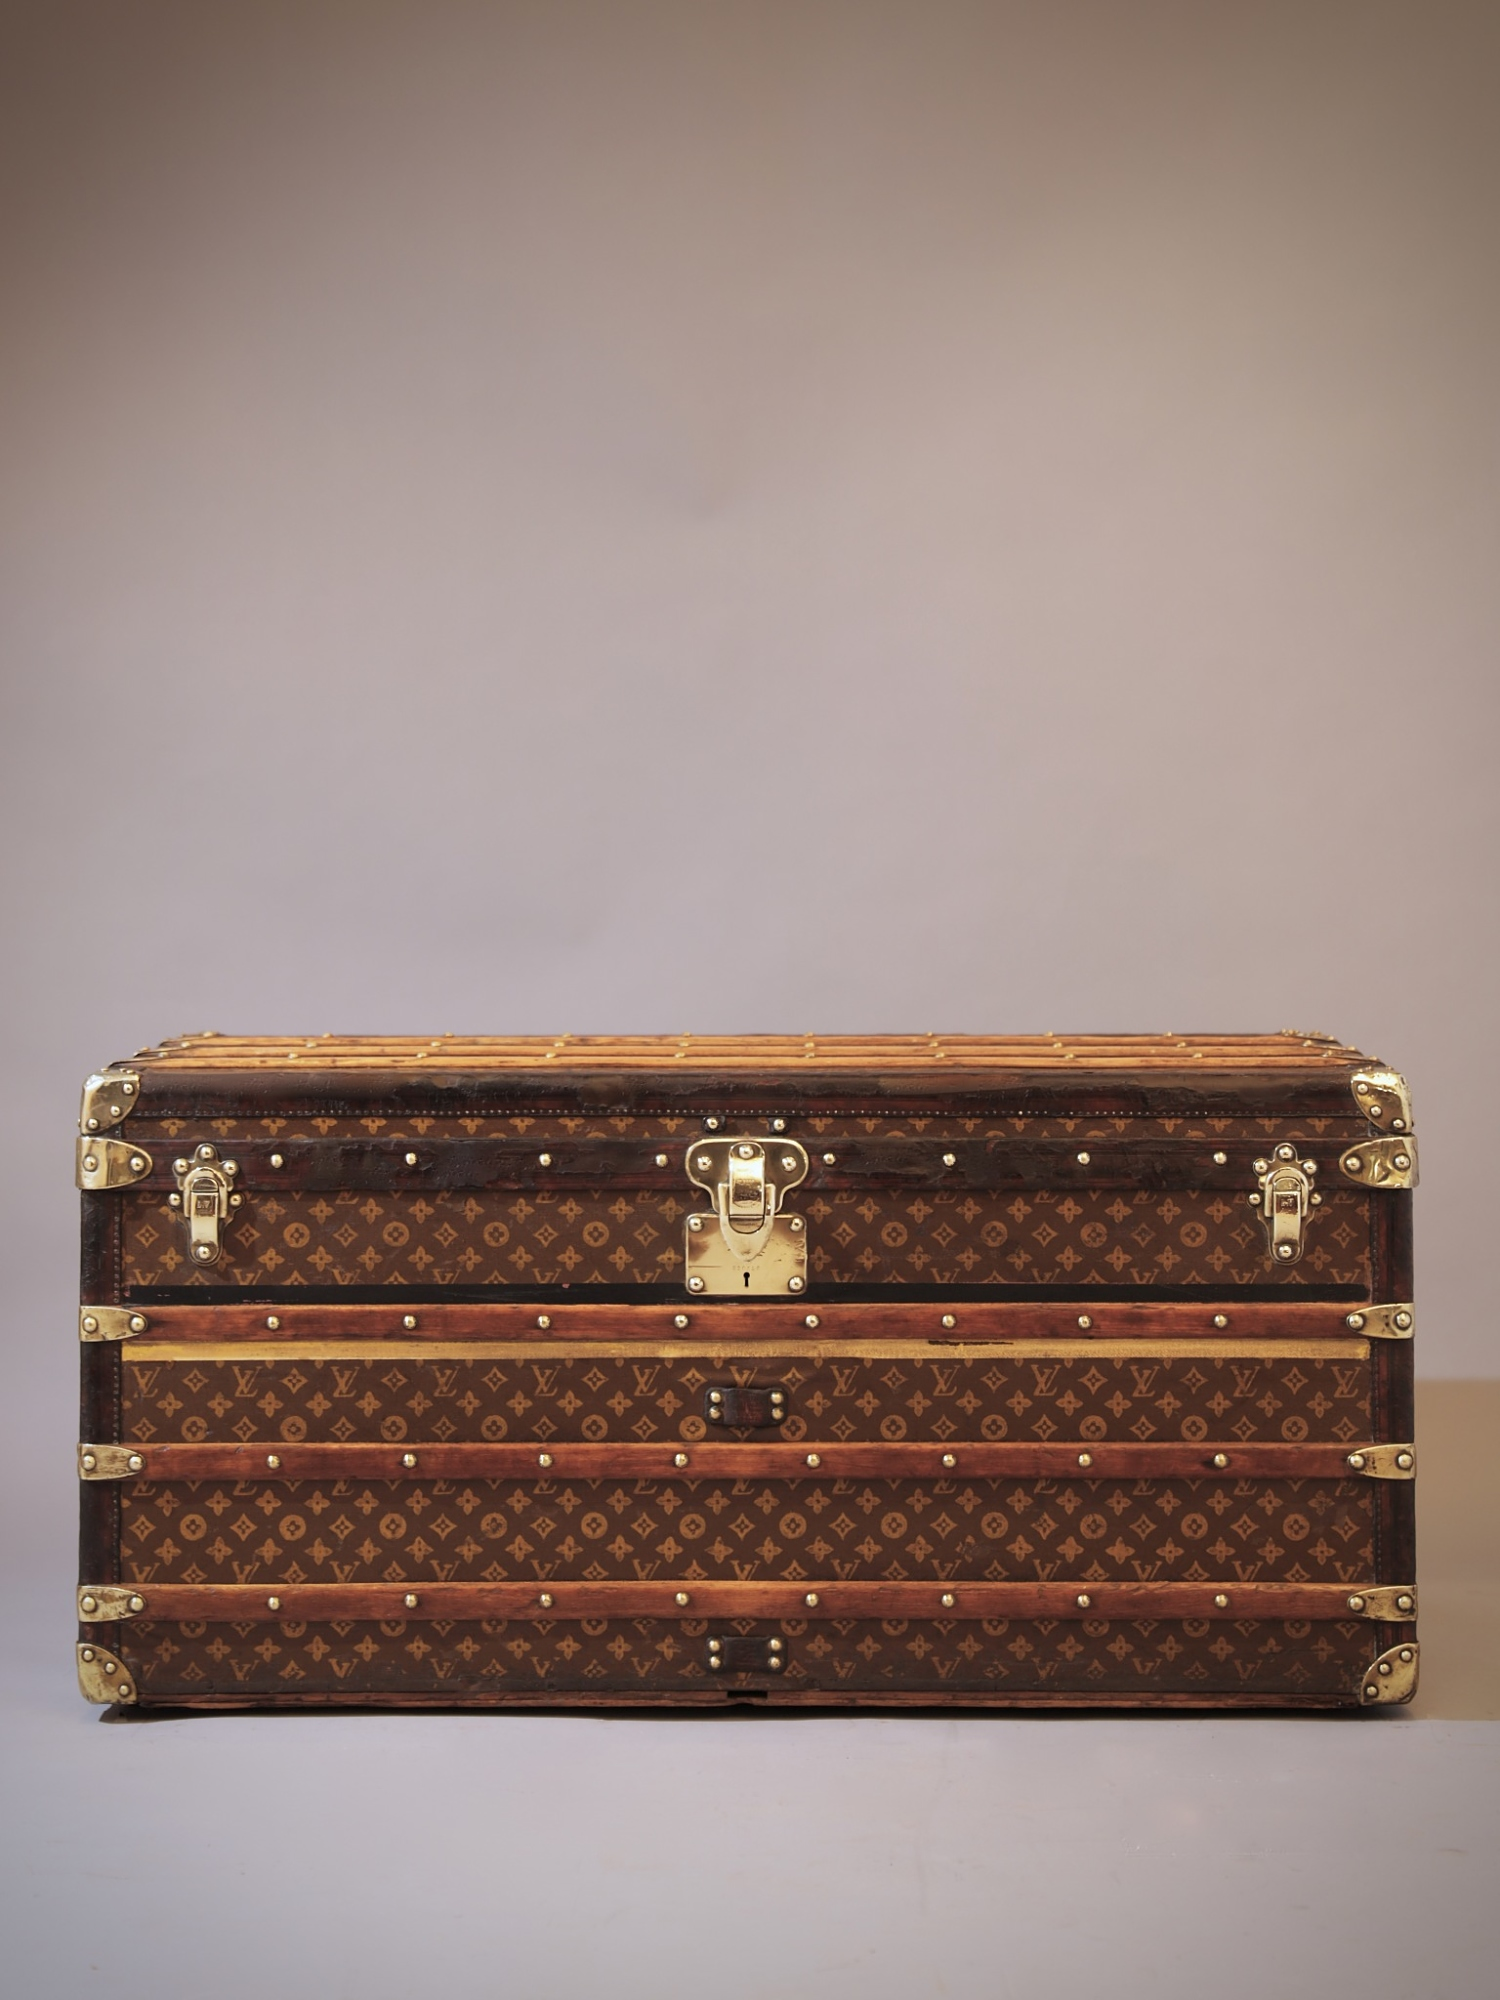 the-well-traveled-trunk-louis-vuitton-thumbnail-product-5664A-1